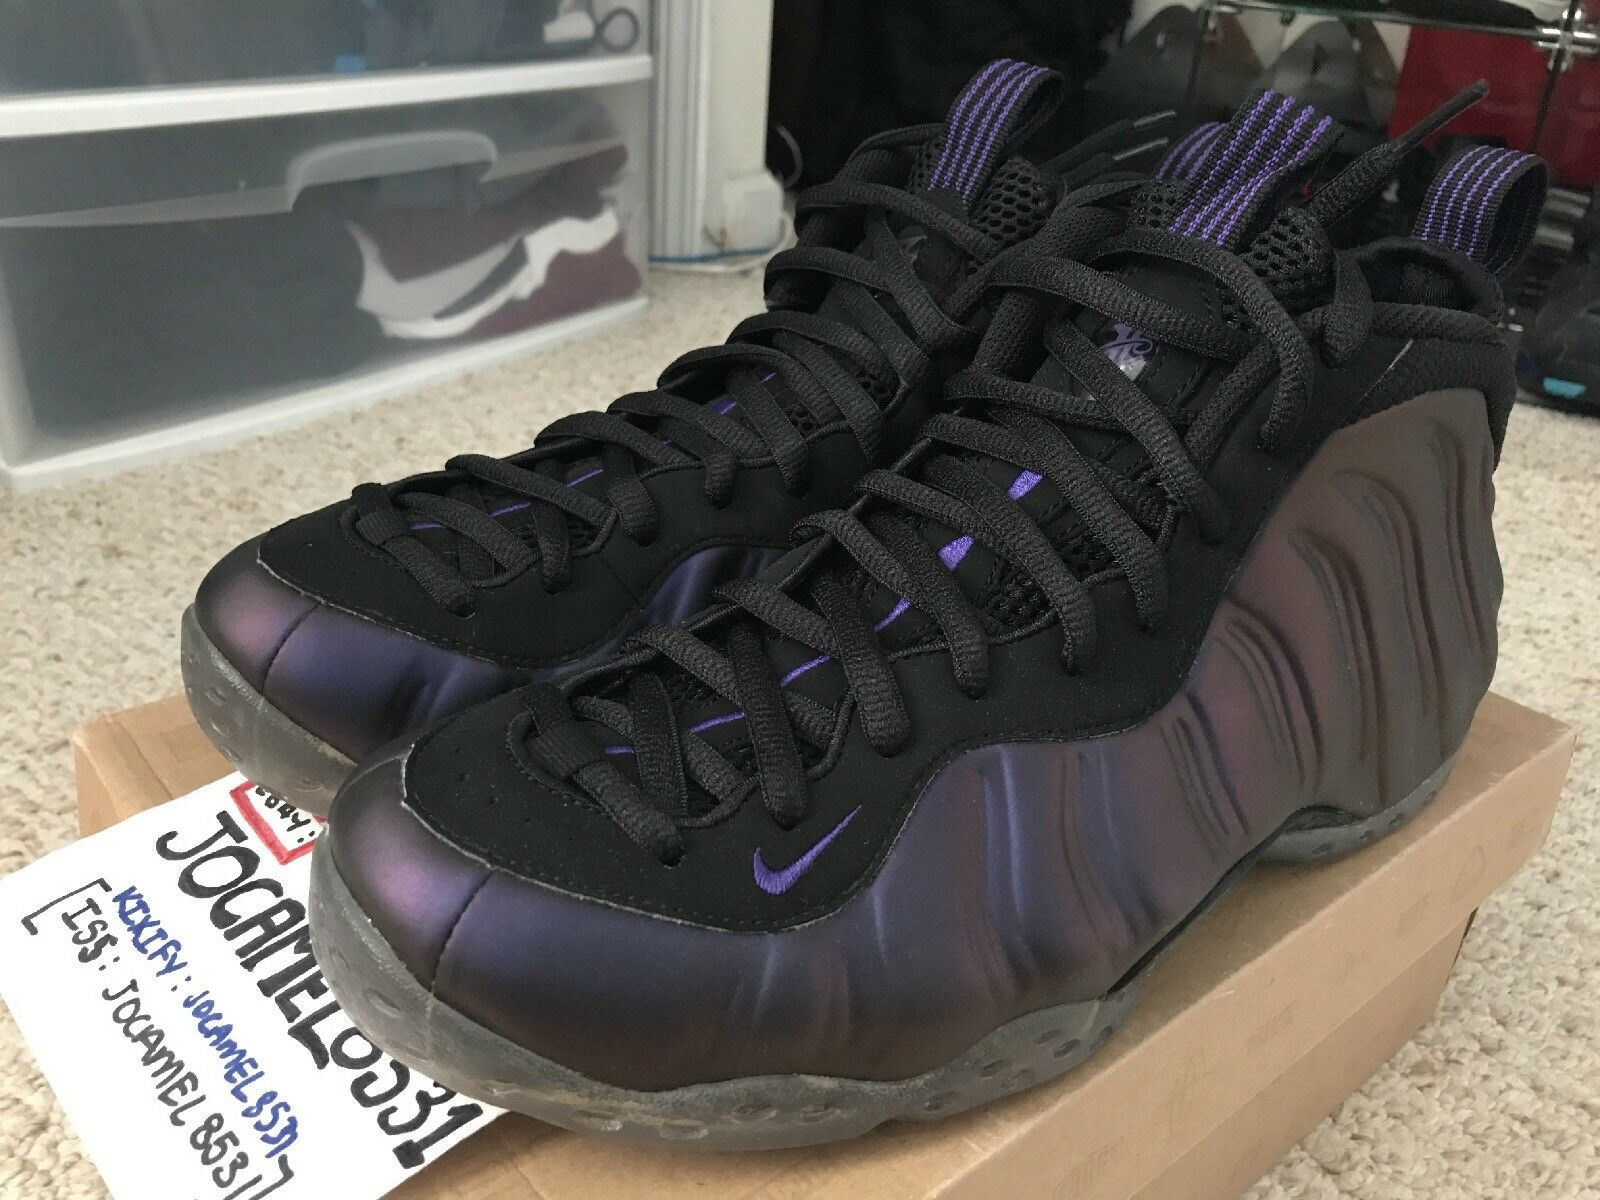 51e231d114 Nike Foamposite One Eggplant 2010 Edition 10.5 DS Deadstock Air Size ...